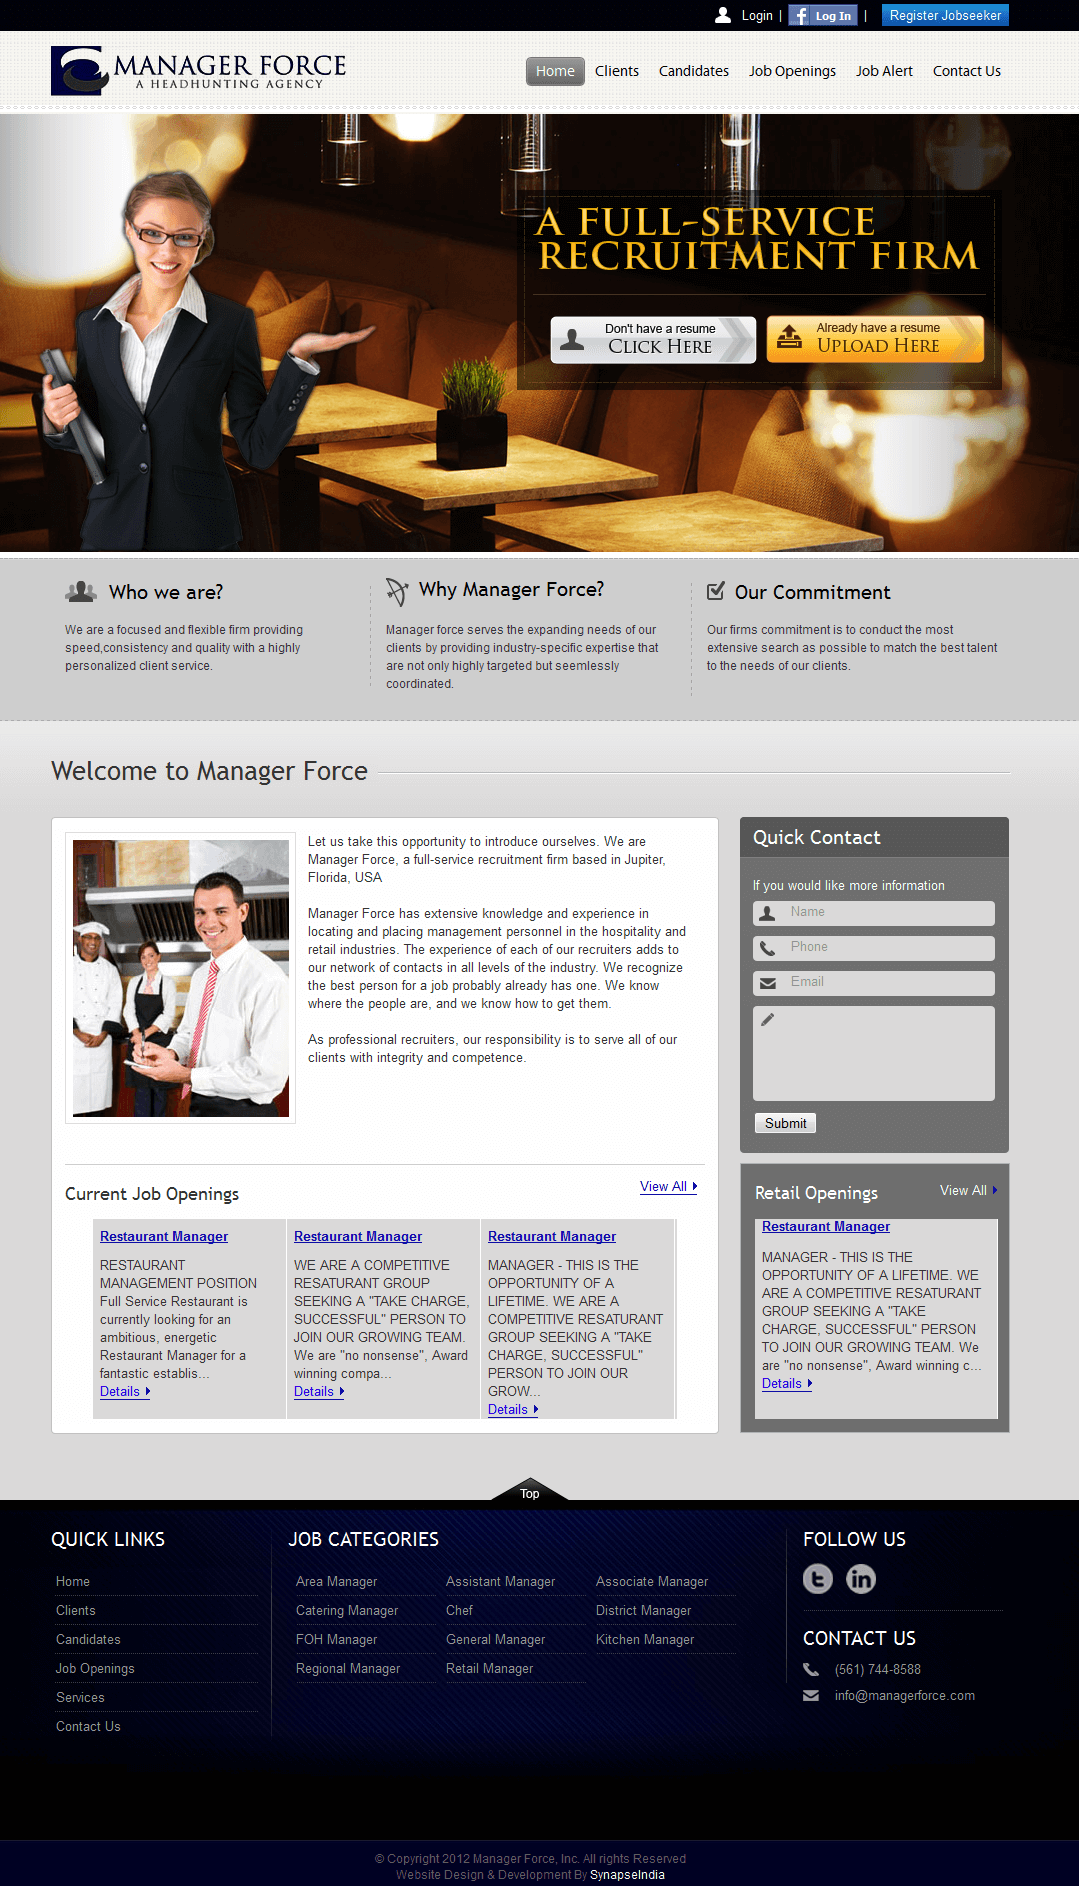 Website in PHP for 'ManagerForce' - Recruitment for Hospitality & Retail